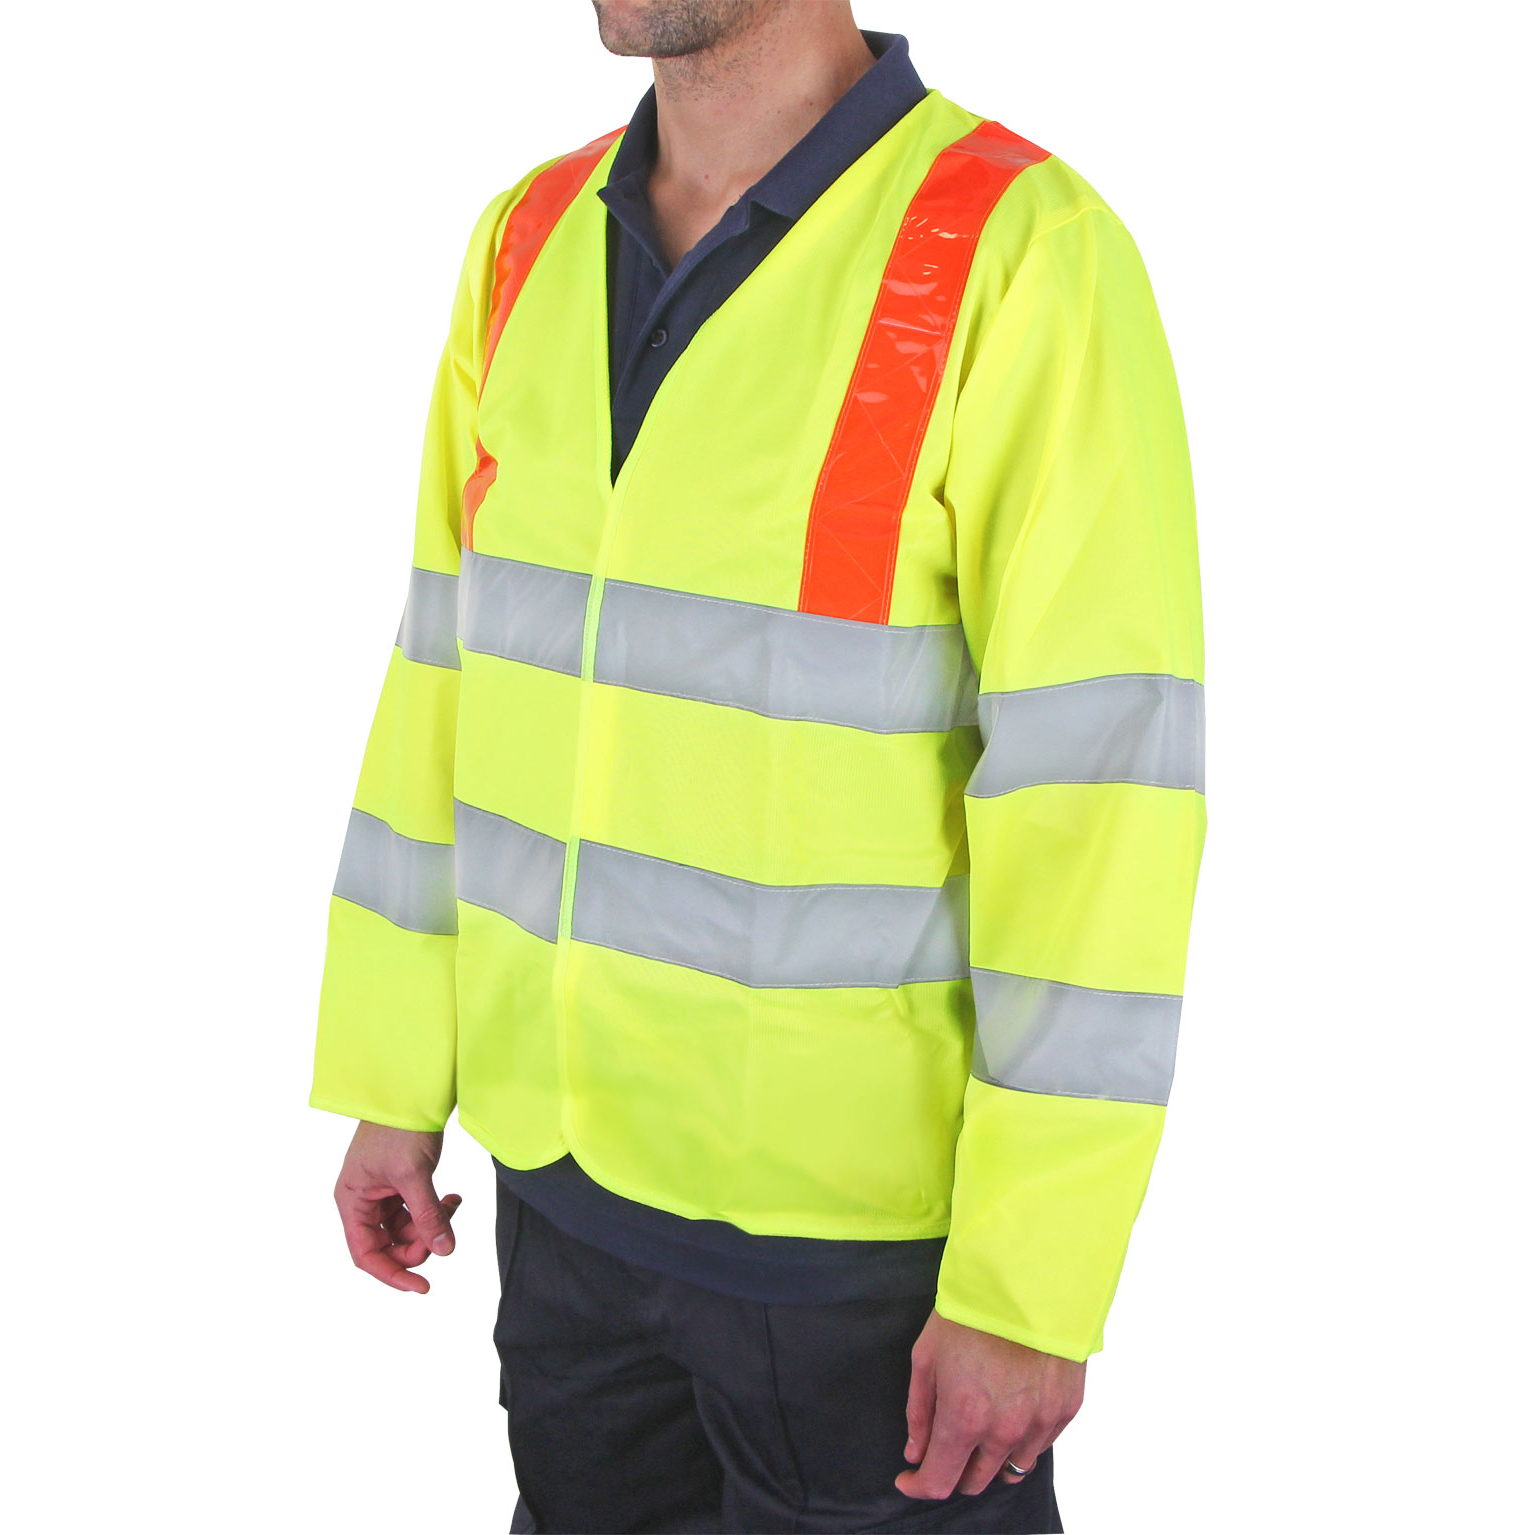 B-Seen High Visibility Long Sleeved Jerkin Large Saturn Yellow/Red Ref PKJENG(RT)L *Up to 3 Day Leadtime*